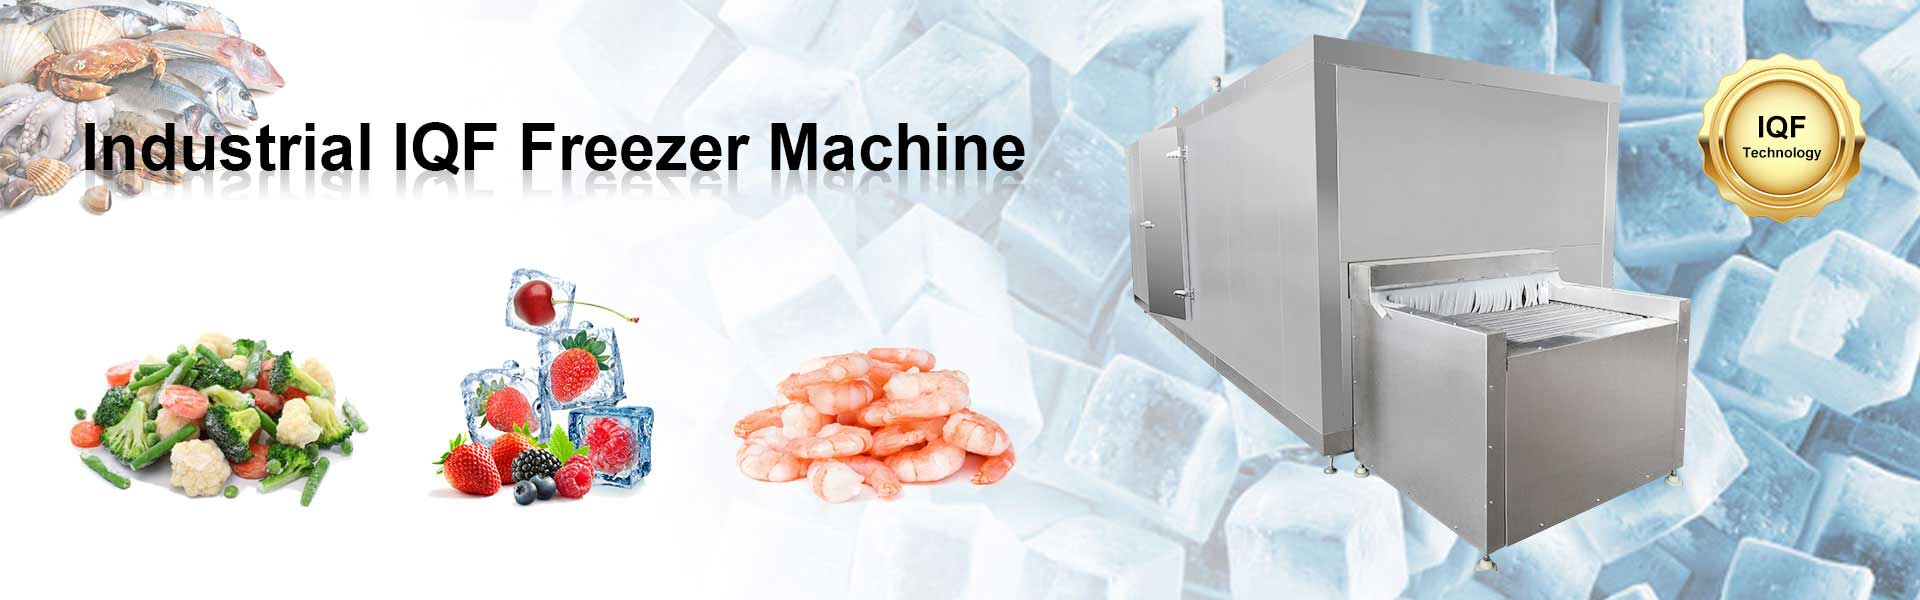 vegetable freezing machine industrial